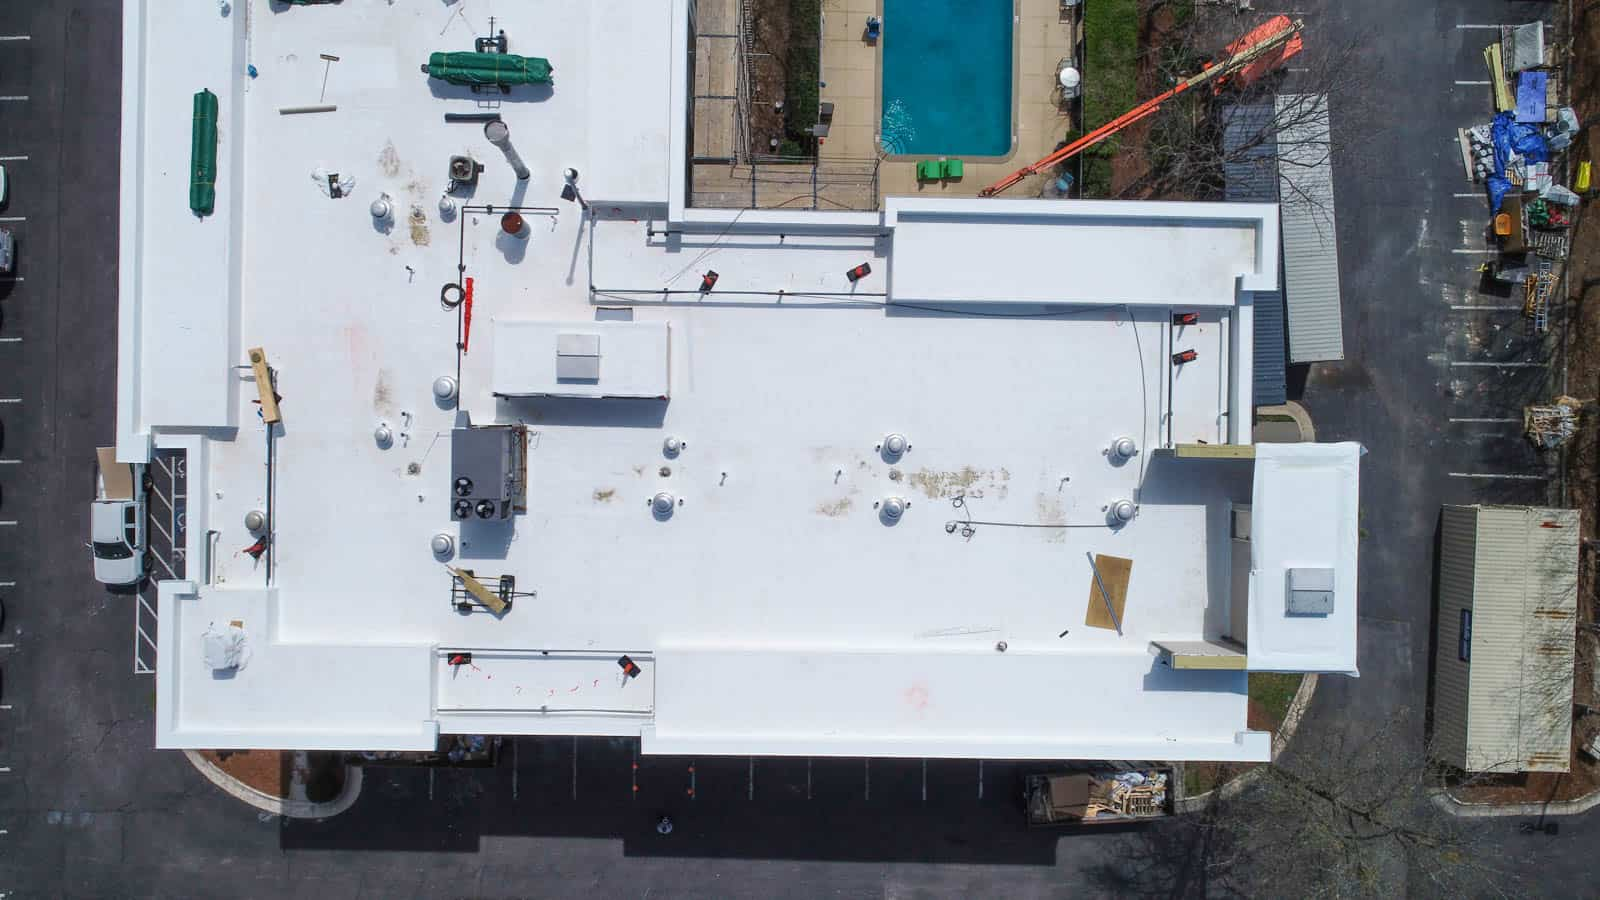 top down drone photo of hotel rooftop in Raleigh, NC